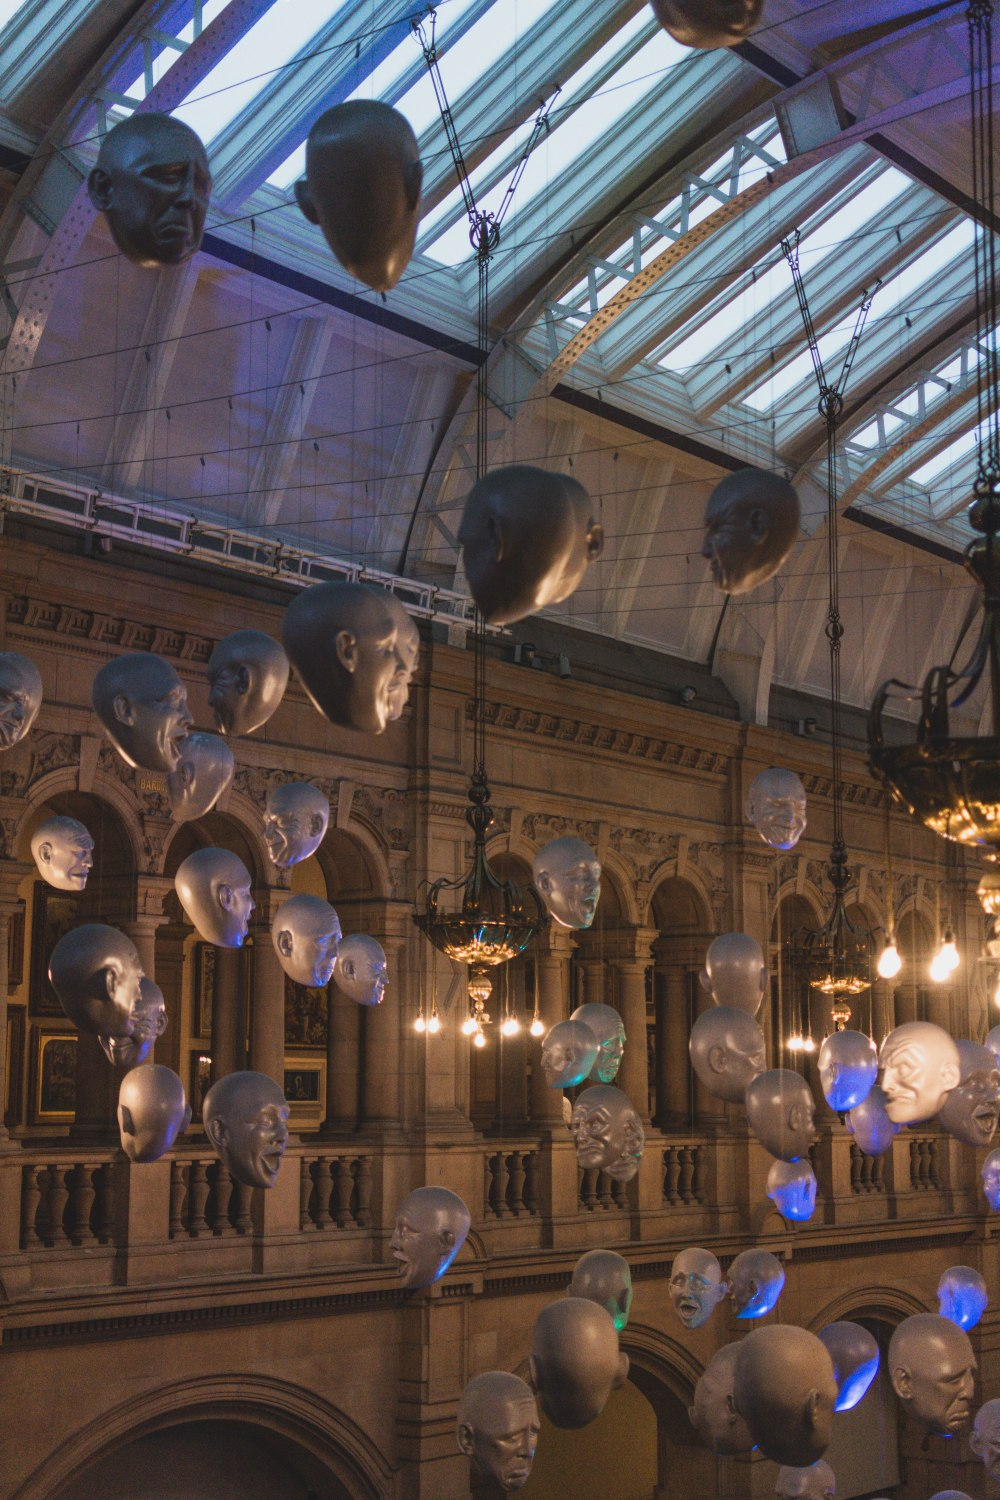 Kelvingrove-Art-Gallery-and-Museum-Glasgow (71)